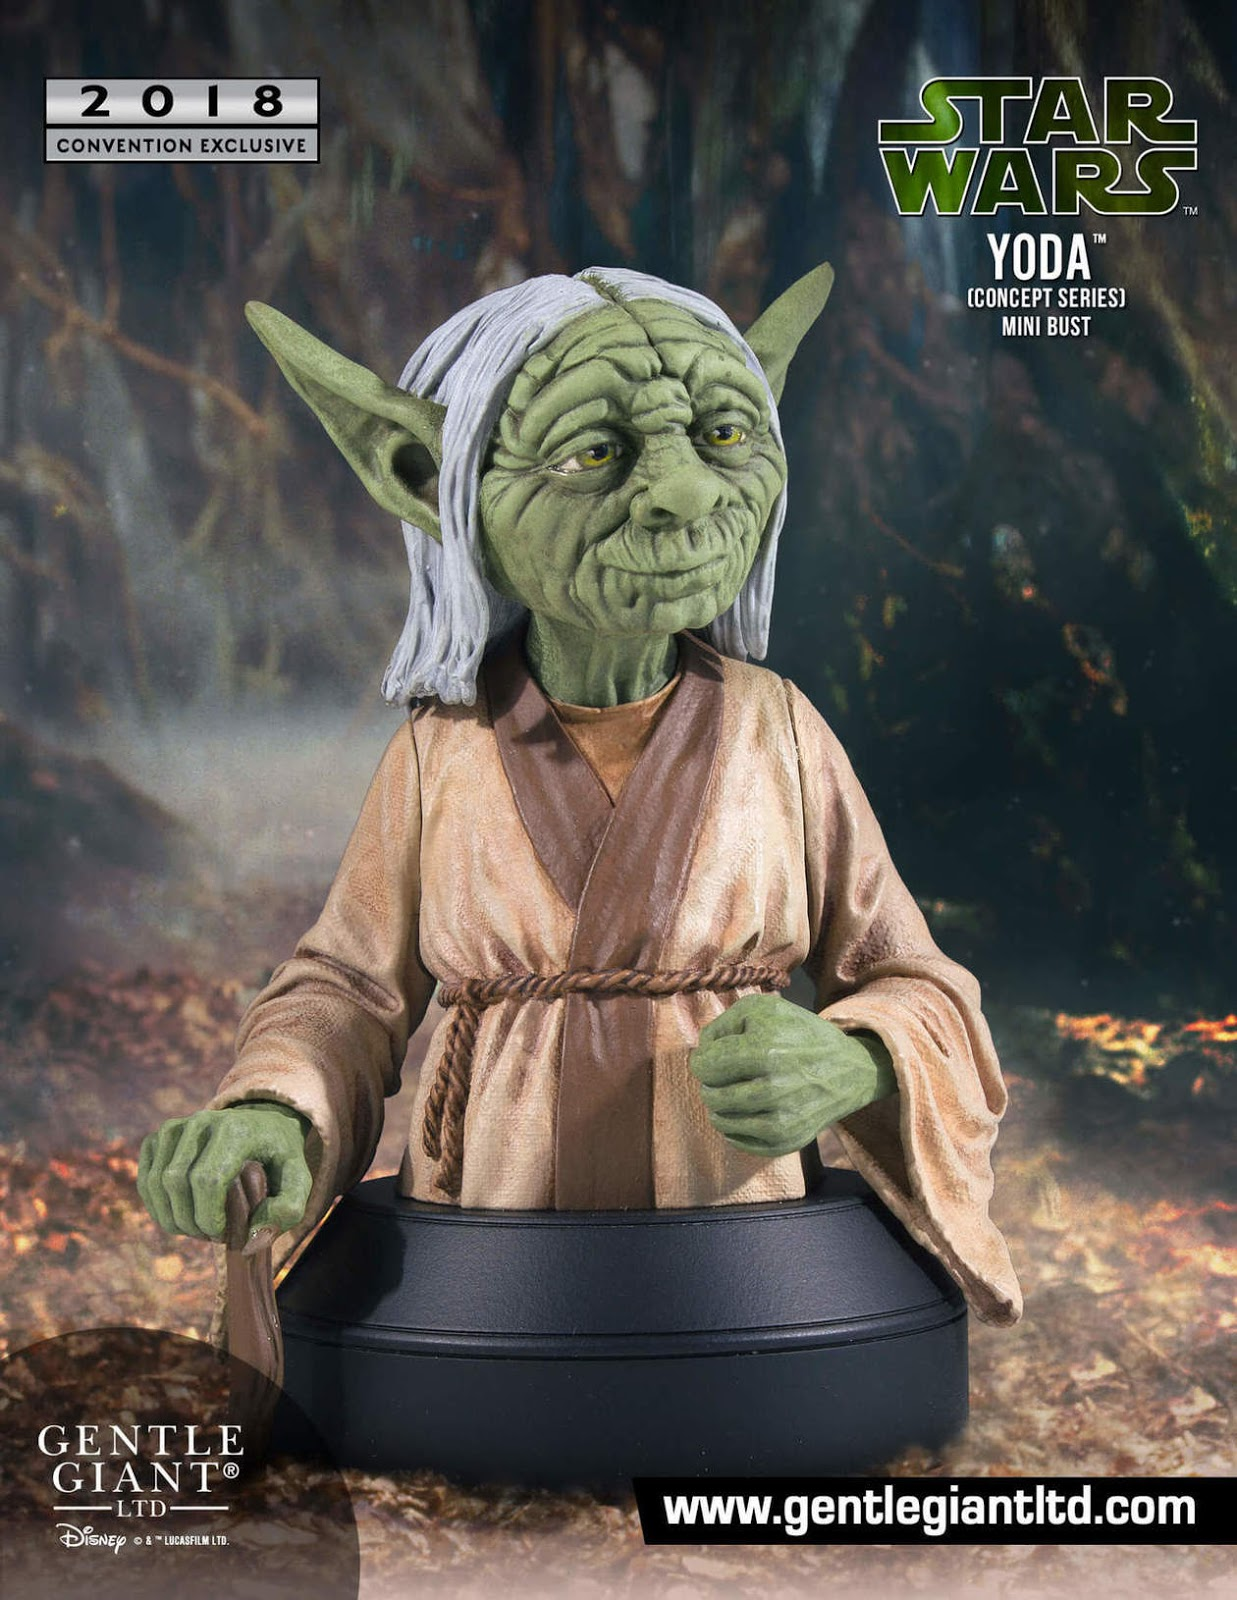 7714fc3ef5c4 San Diego Comic-Con 2018 Exclusive Star Wars Yoda Ralph McQuarrie Concept  Art Mini Bust